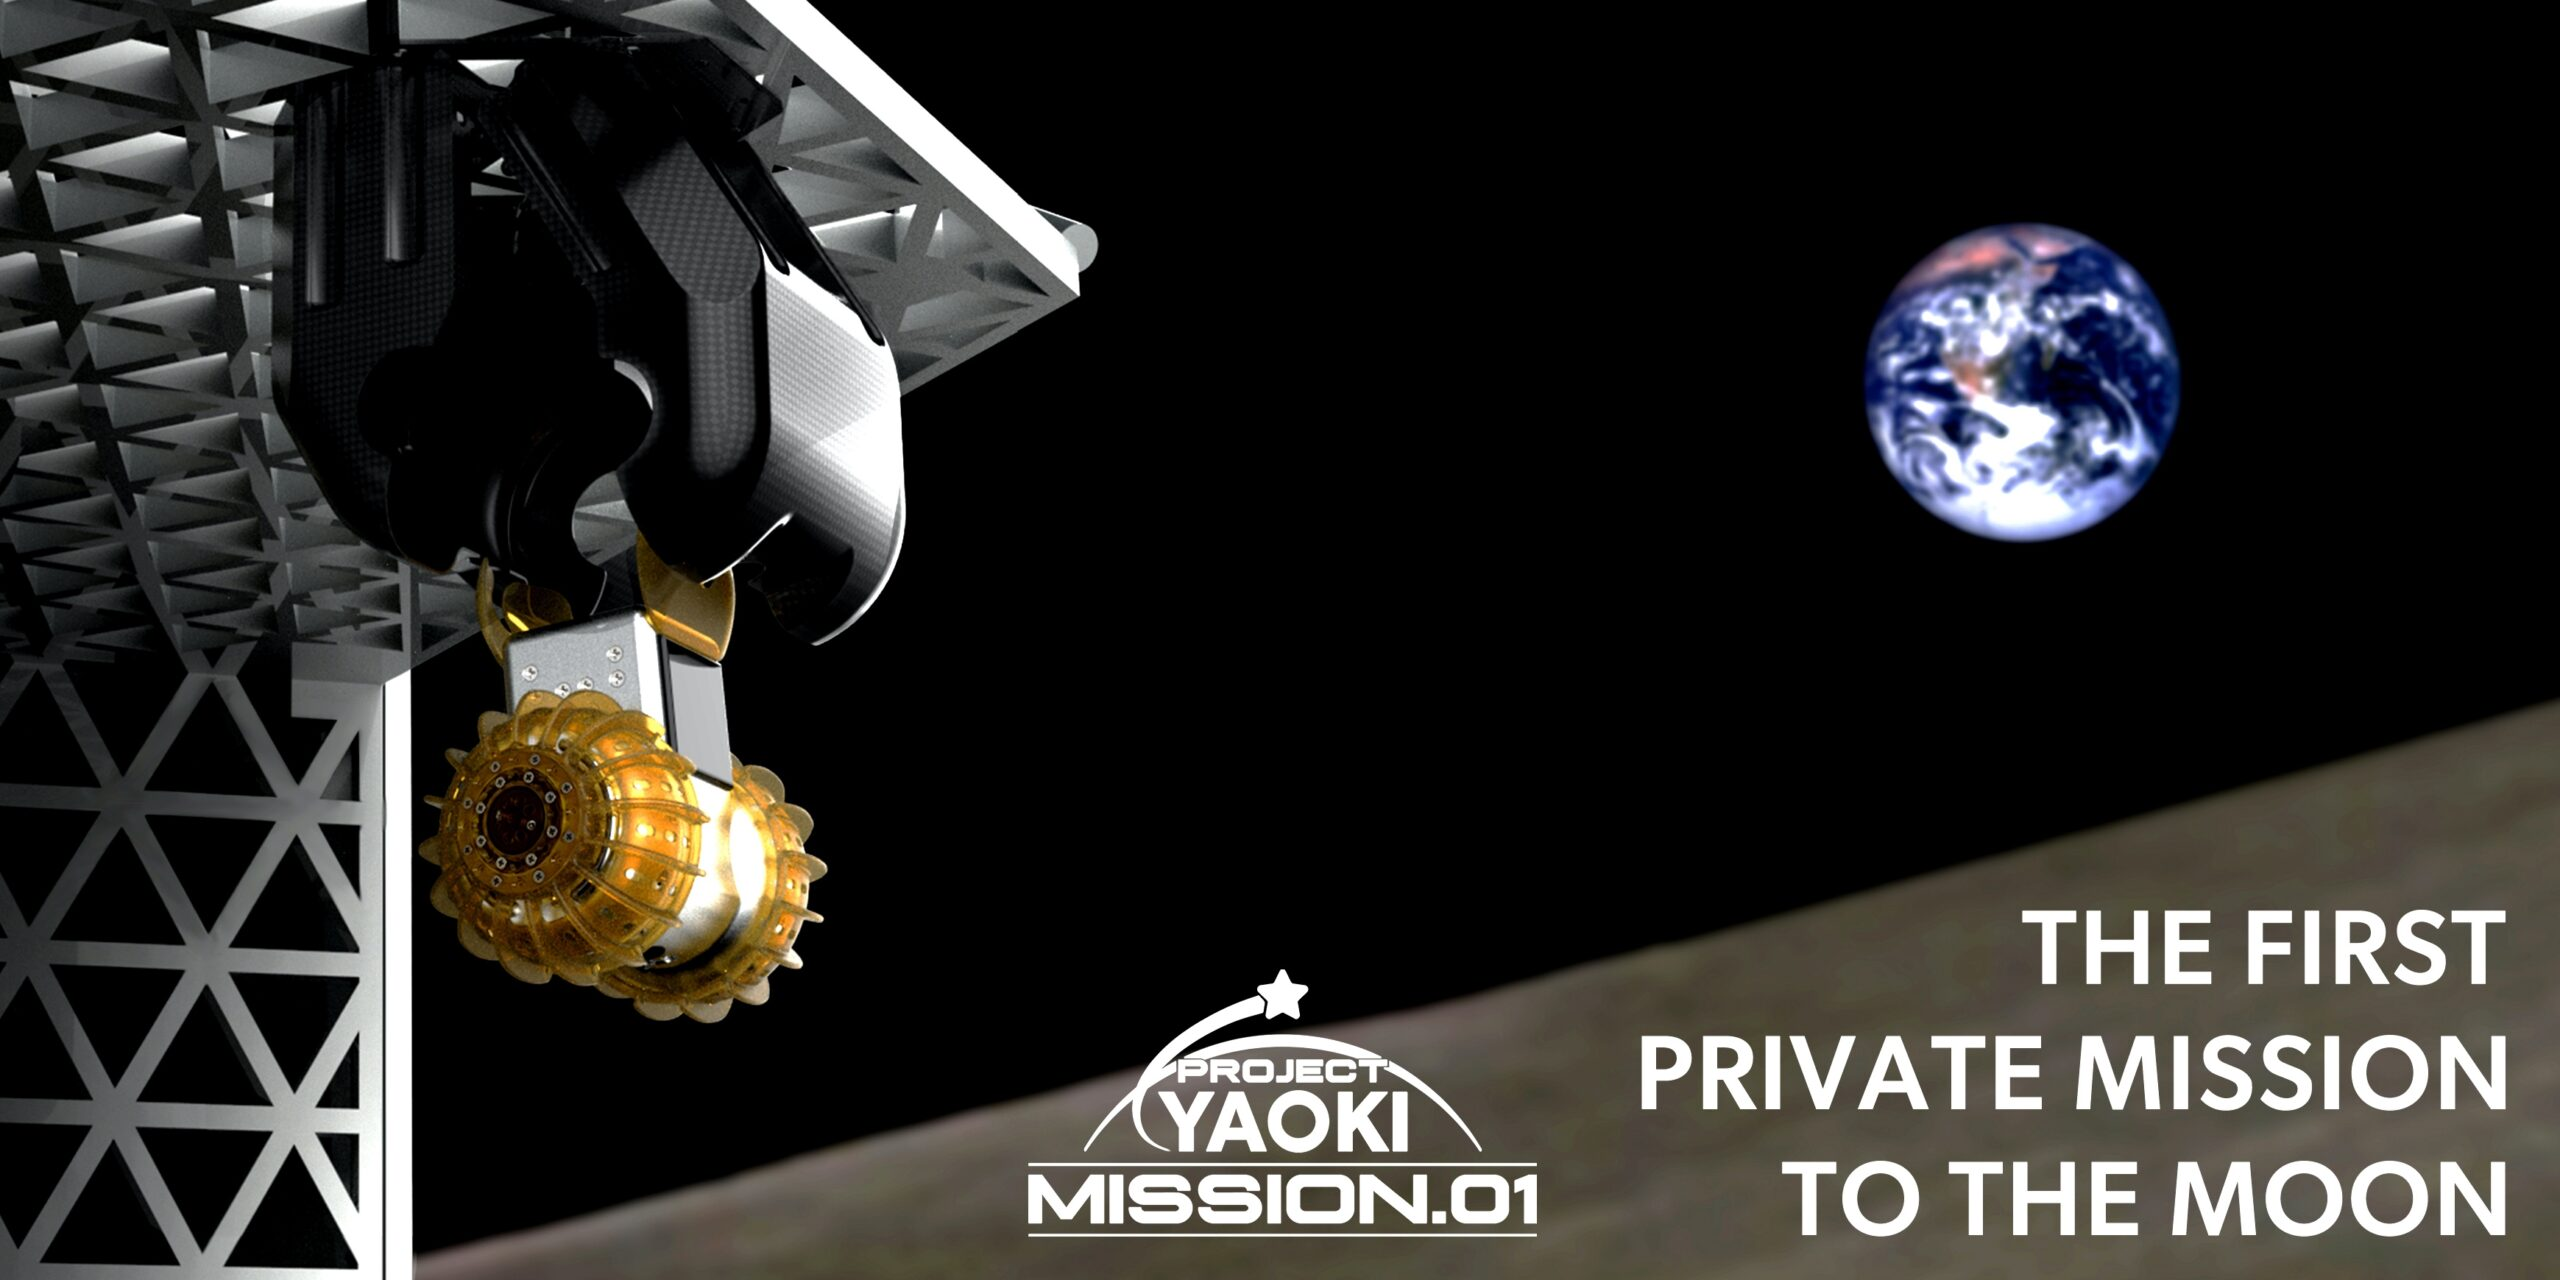 THE FIRST PRIVATE MISSION TO THE MOON